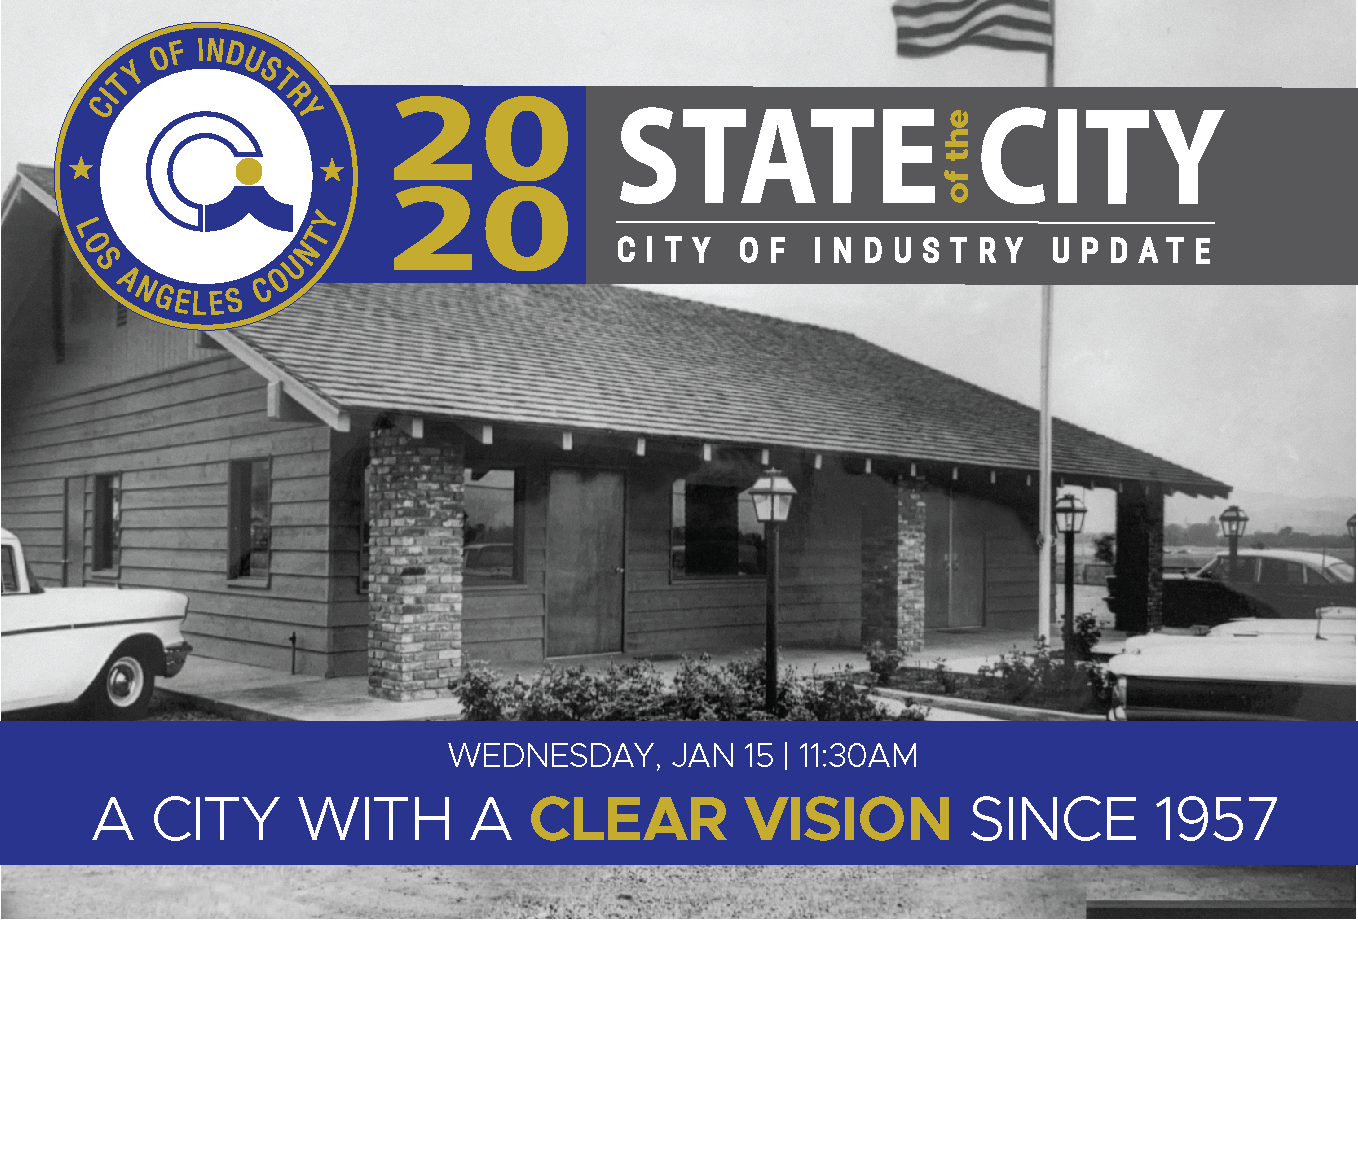 2020 STATE OF THE CITY